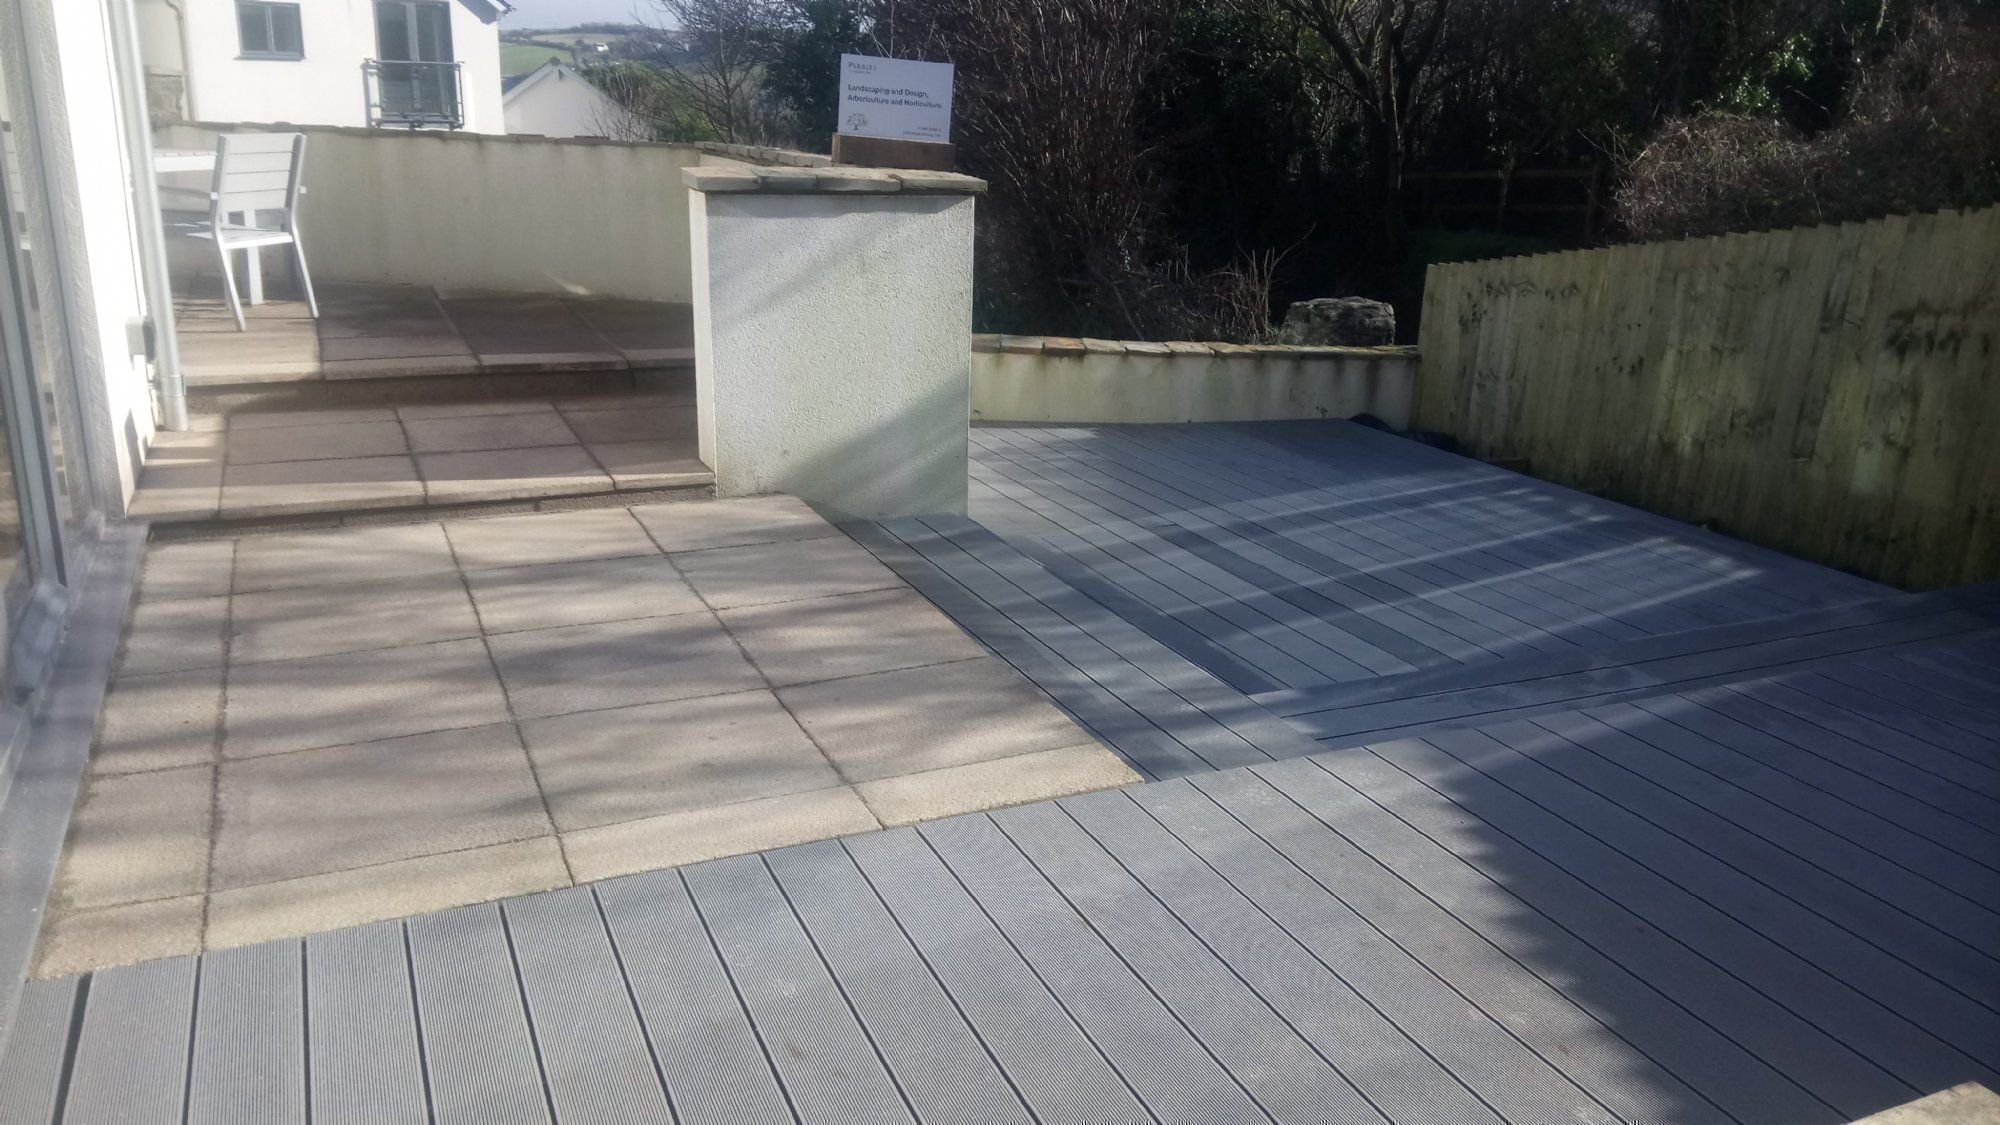 Landscaping services in South Hams with Pebbles of Salcombe